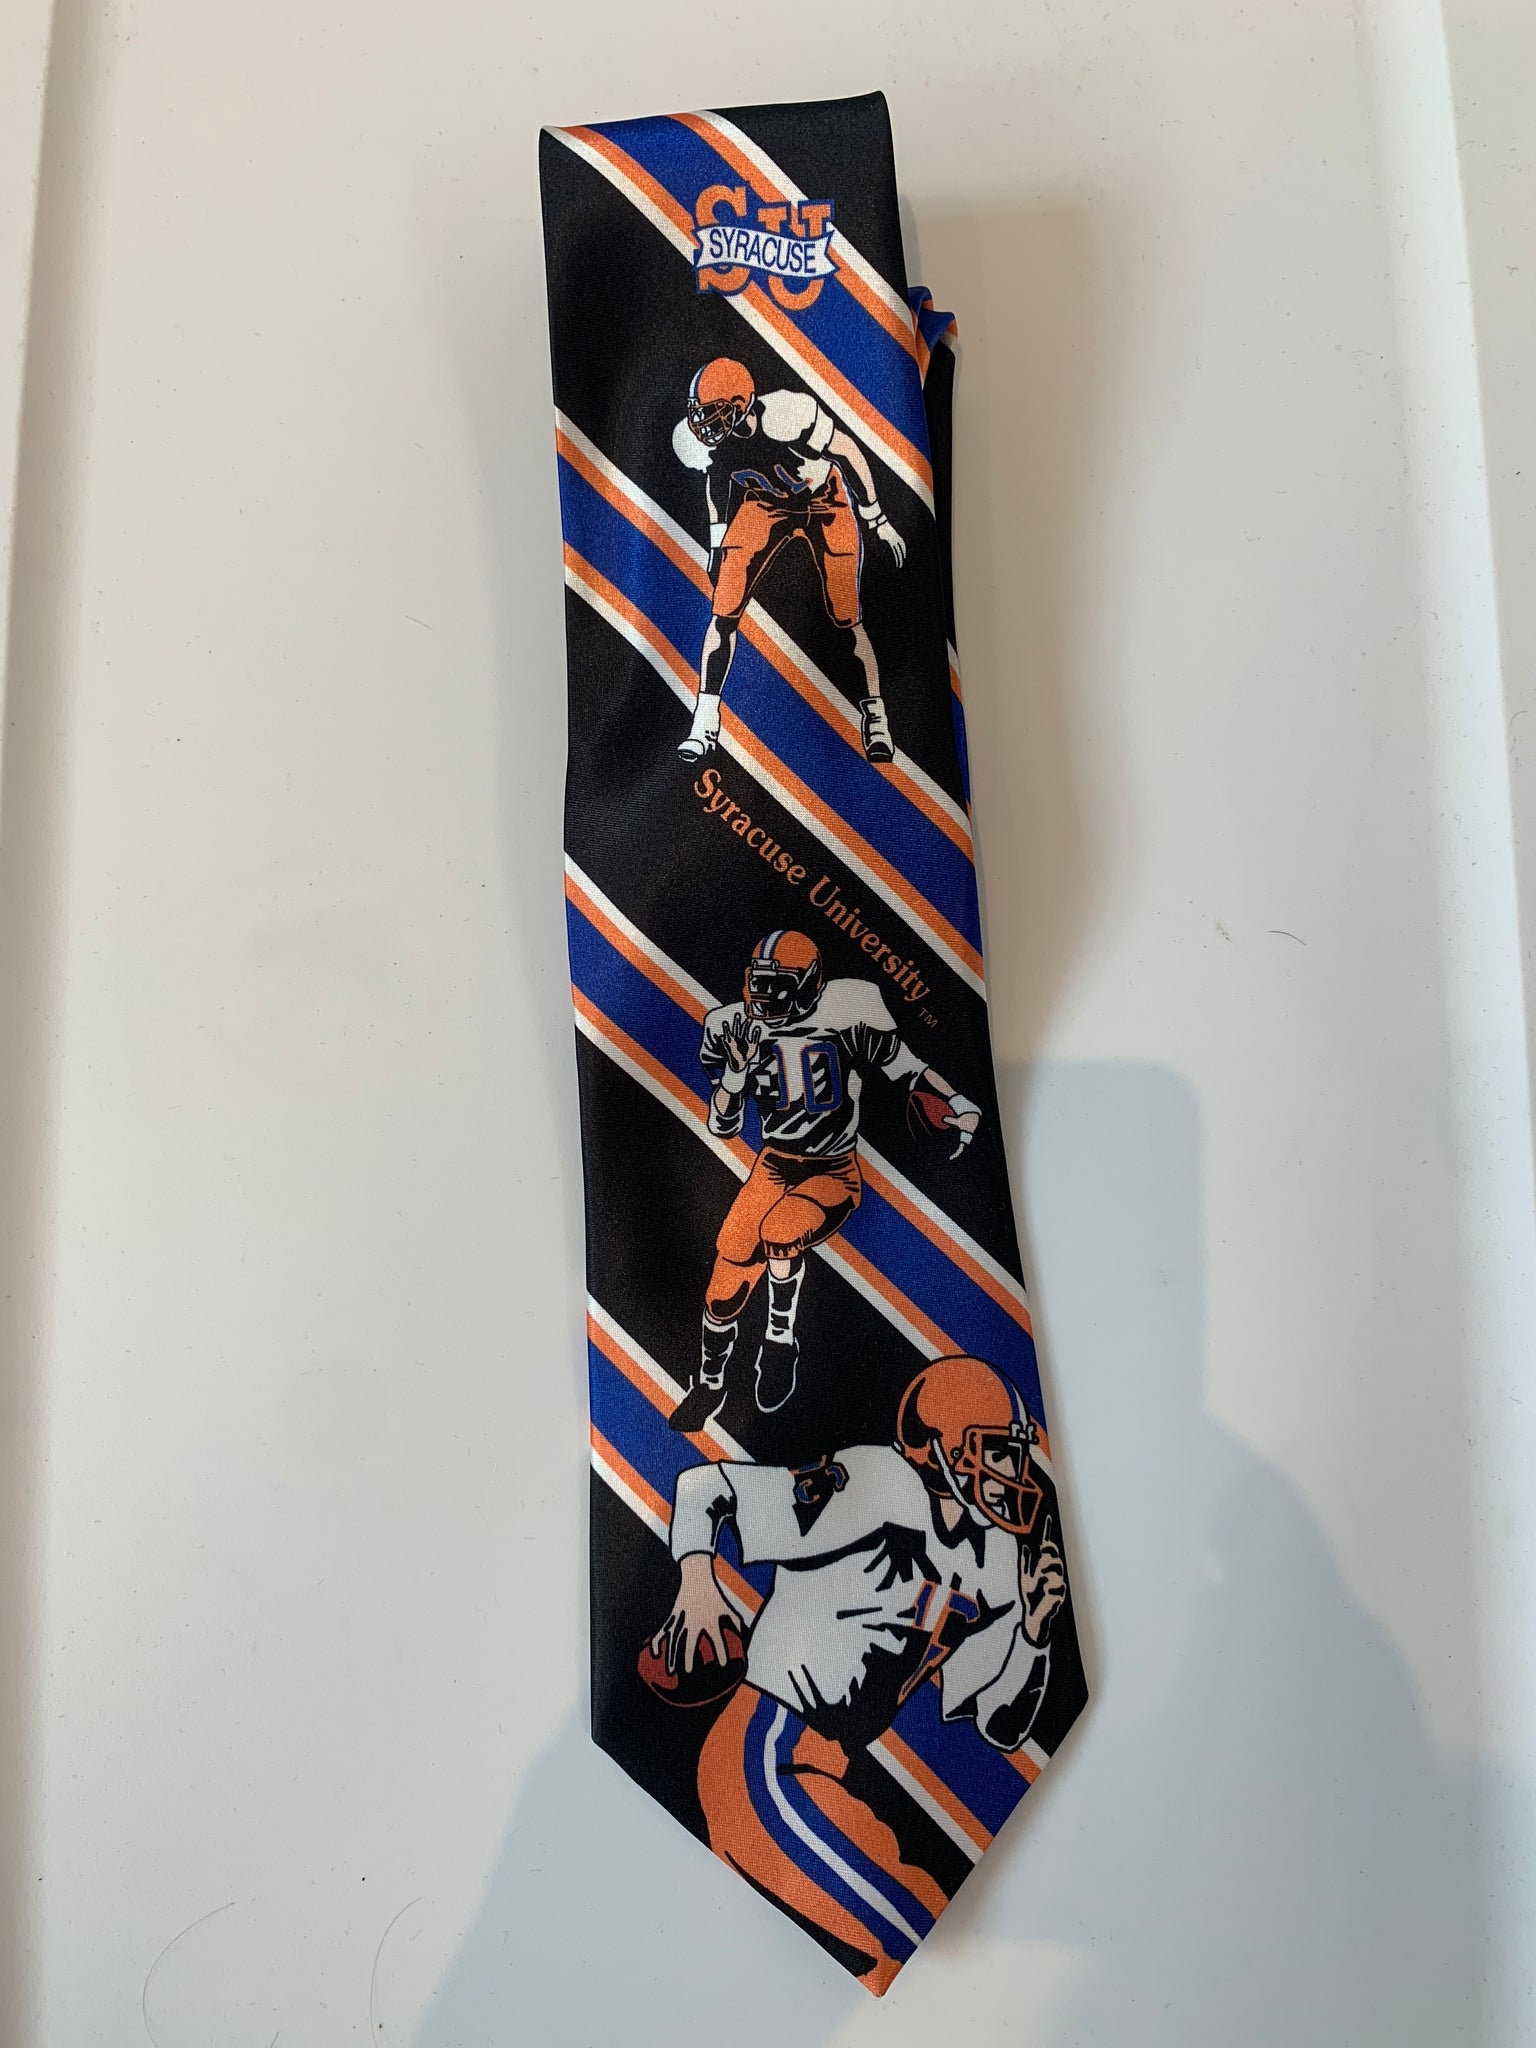 Vintage Syracuse University Football tie